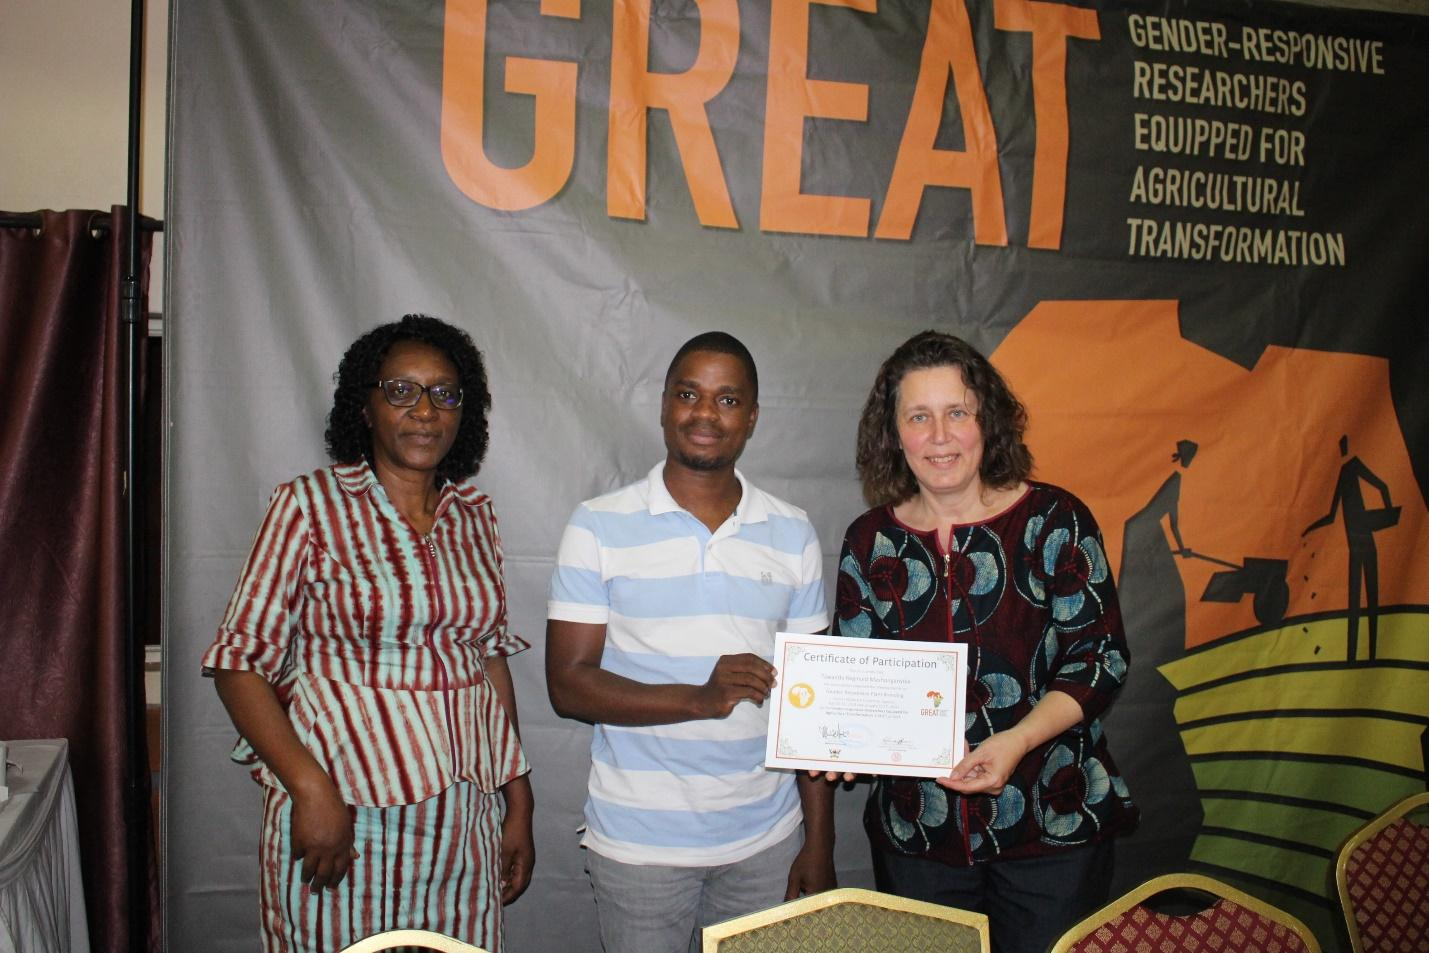 Above L-R: Assoc. Prof. Margaret Najjingo Mangheni, Makerere University; Tawanda Mashonganyika, a participant from the Excellence in Breeding Platform; and, Dr. Christine Leuenberger, Cornell University, during the certificate award ceremony.